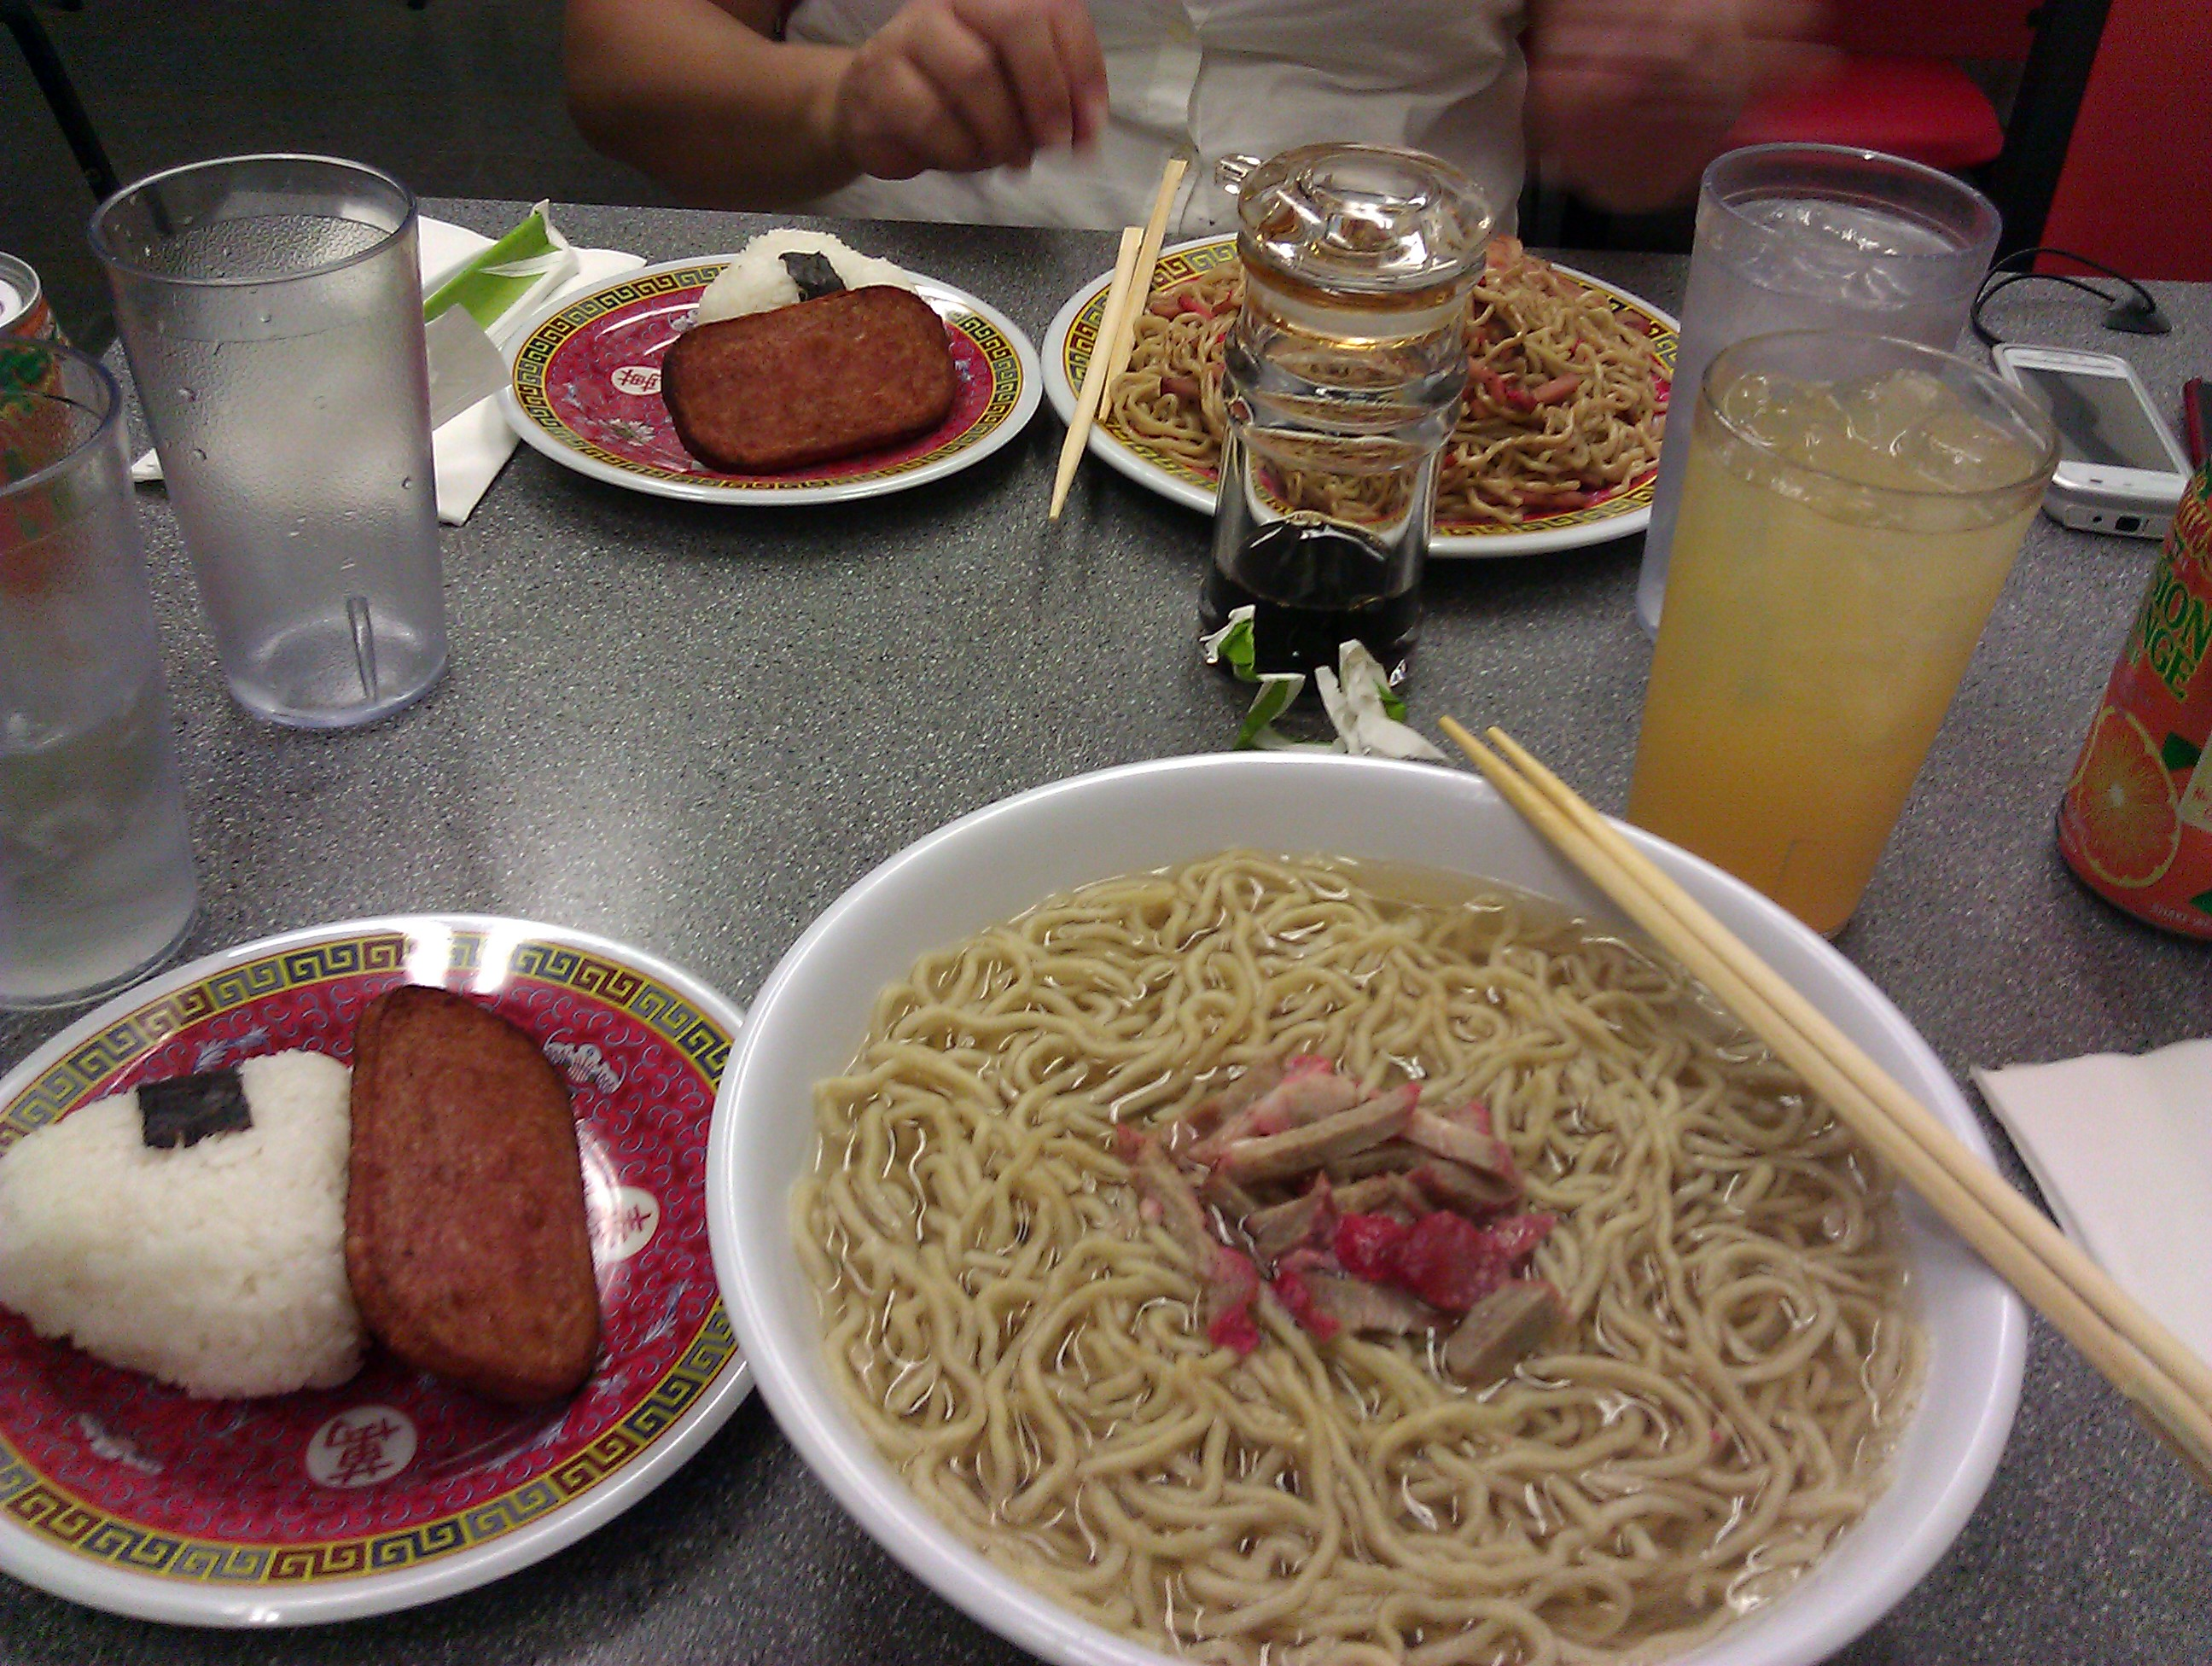 ParkRat and @mel808 FoodPosse Eat at The Old Saimin House